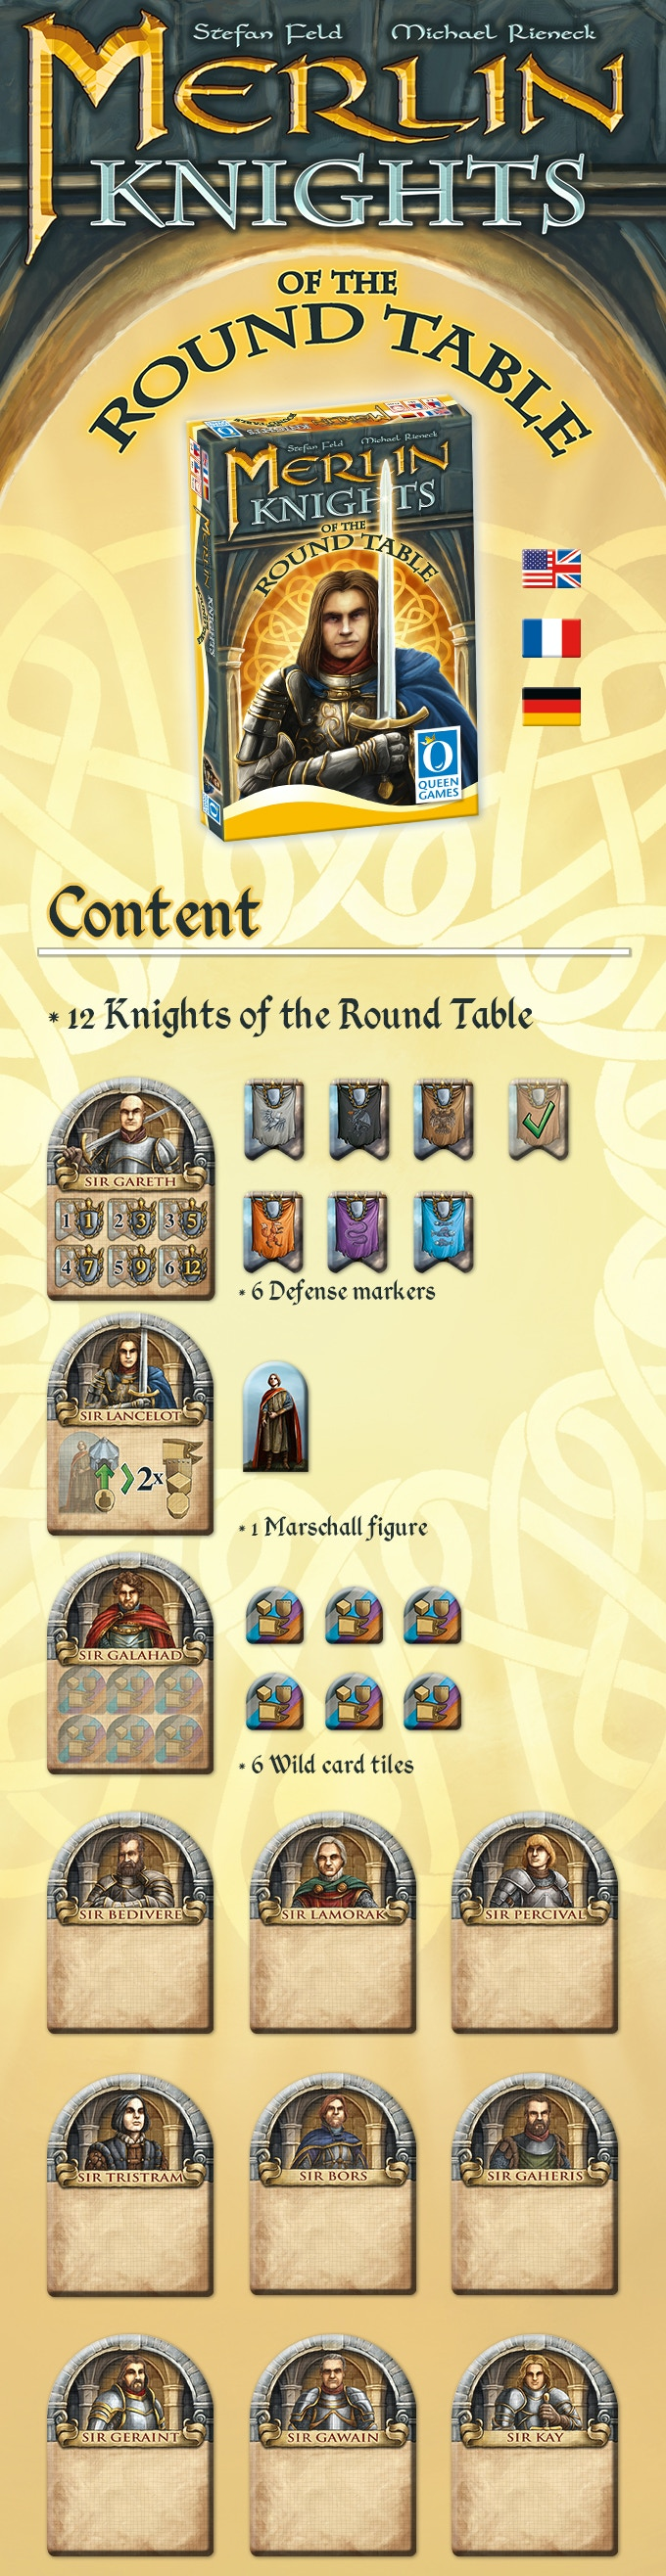 12 Knights Of The Round Table.Merlin Knights Of The Round Table By Queen Games Kickstarter